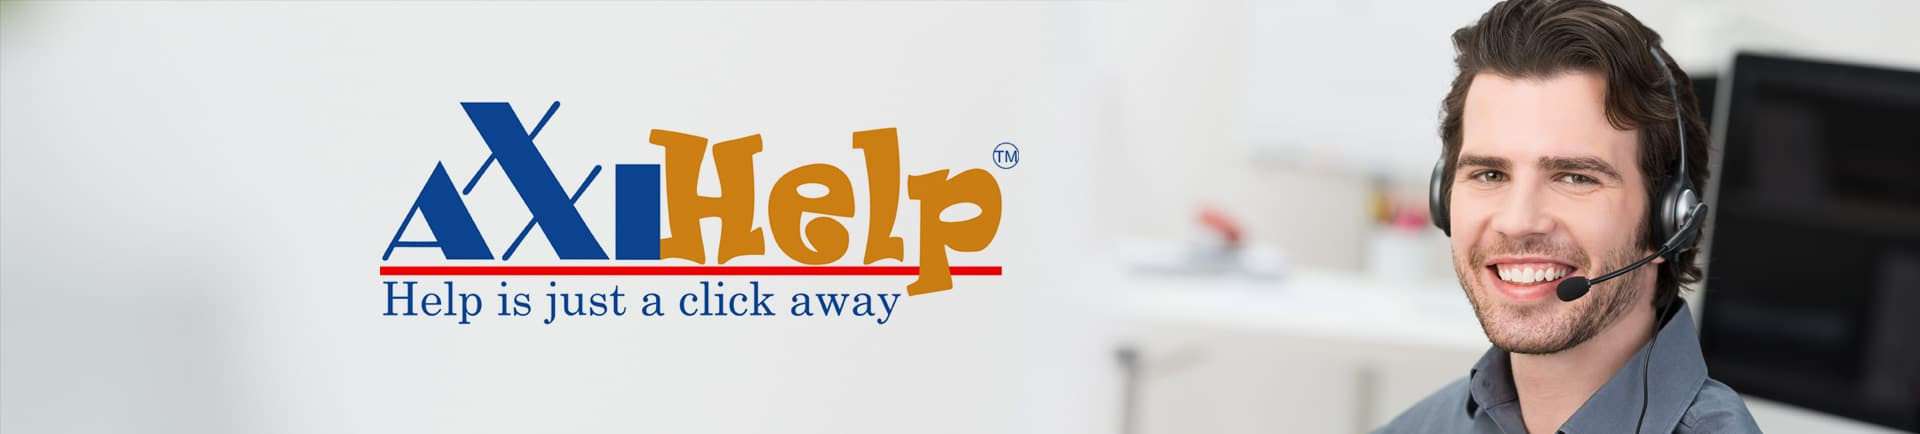 24/7 Support – AxxiHELP